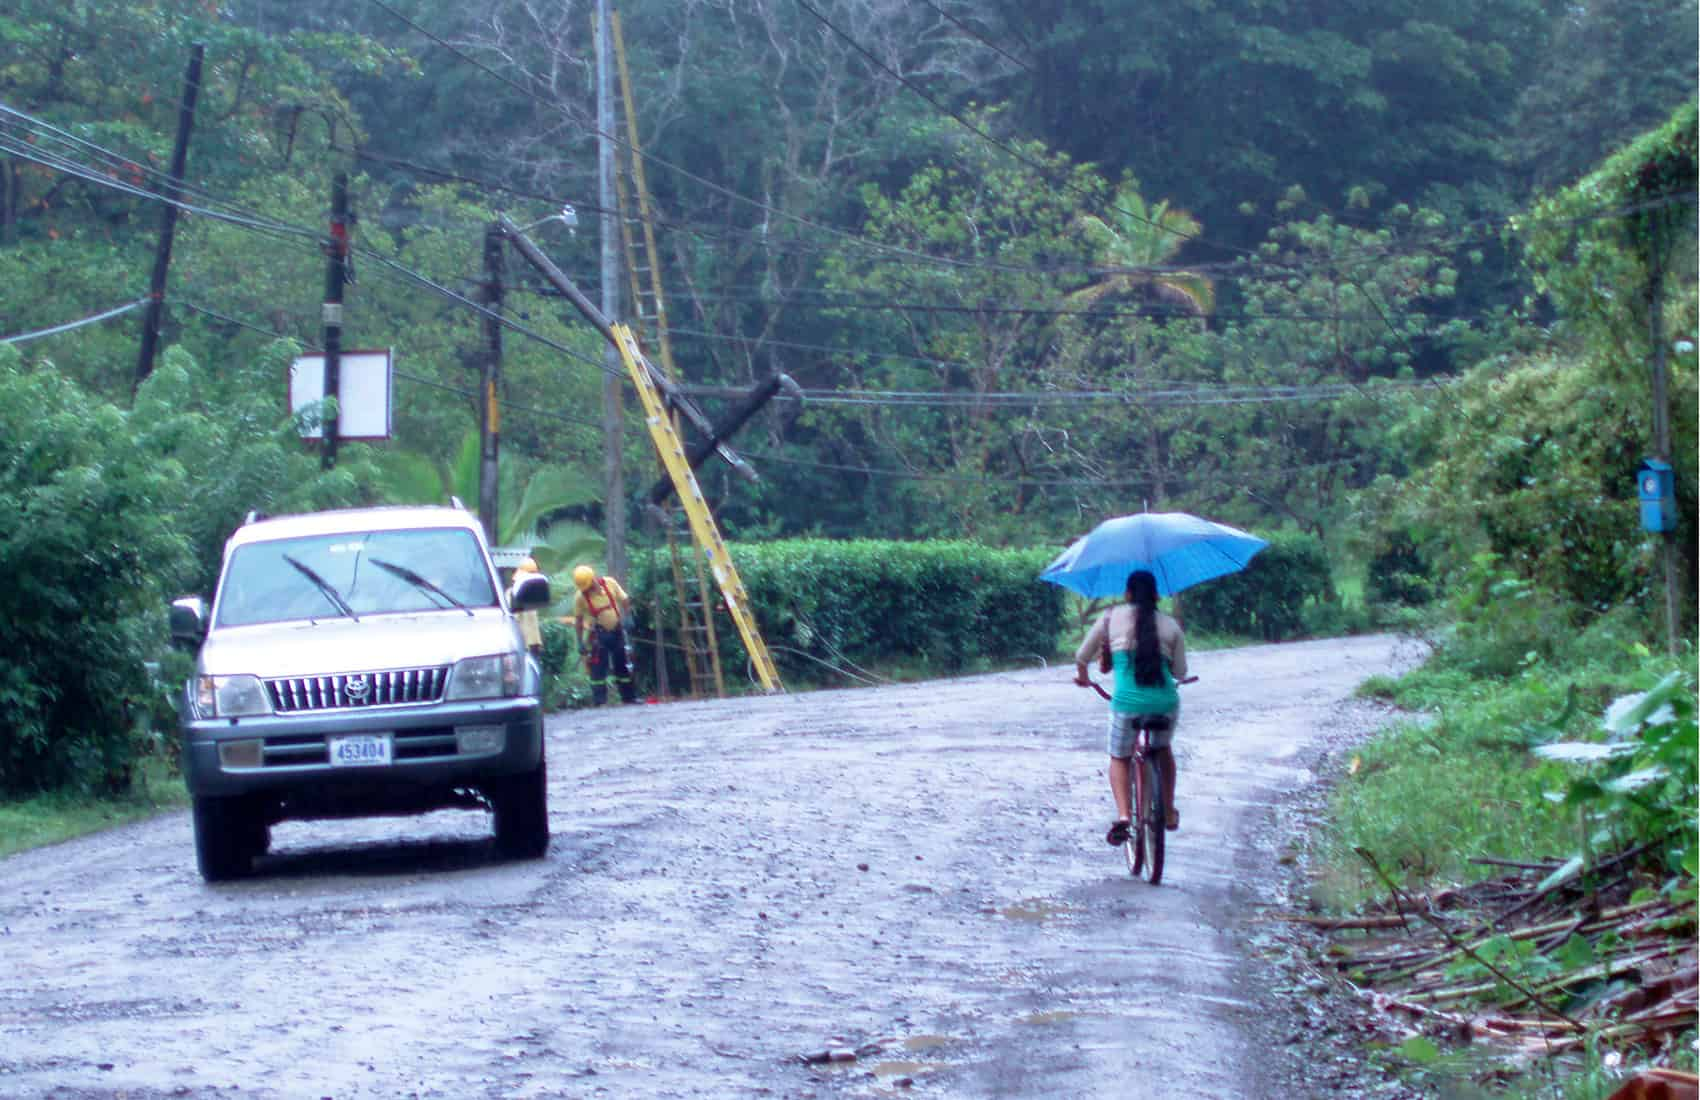 Emergency officials are warning residents of the Caribbean and northern regions about potential flooding, landslides and strong wind, May 18, 2015.